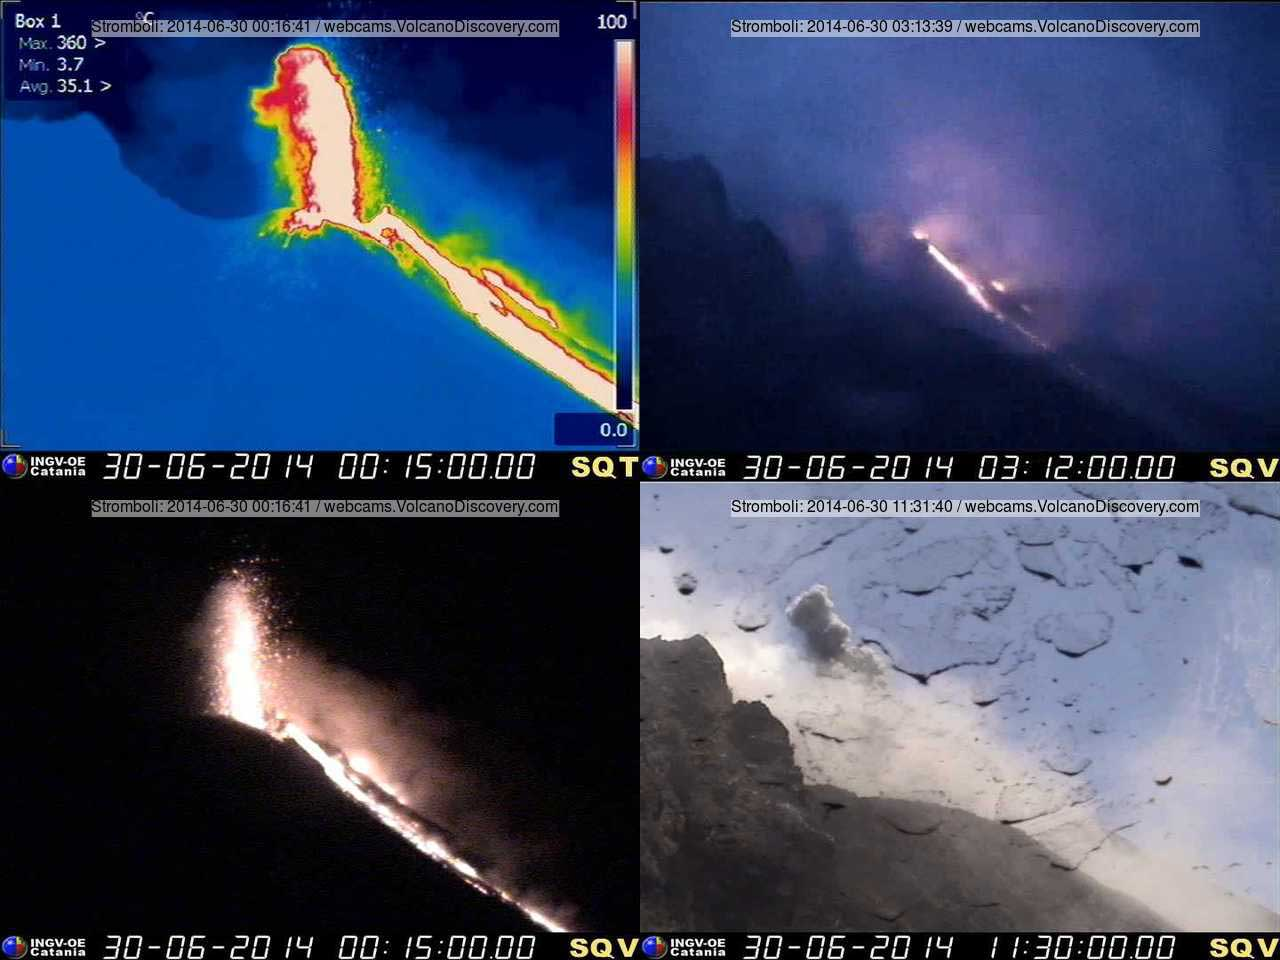 Webcam images of the lava flow on Stromboli's Sciara del Fuoco this night and morning